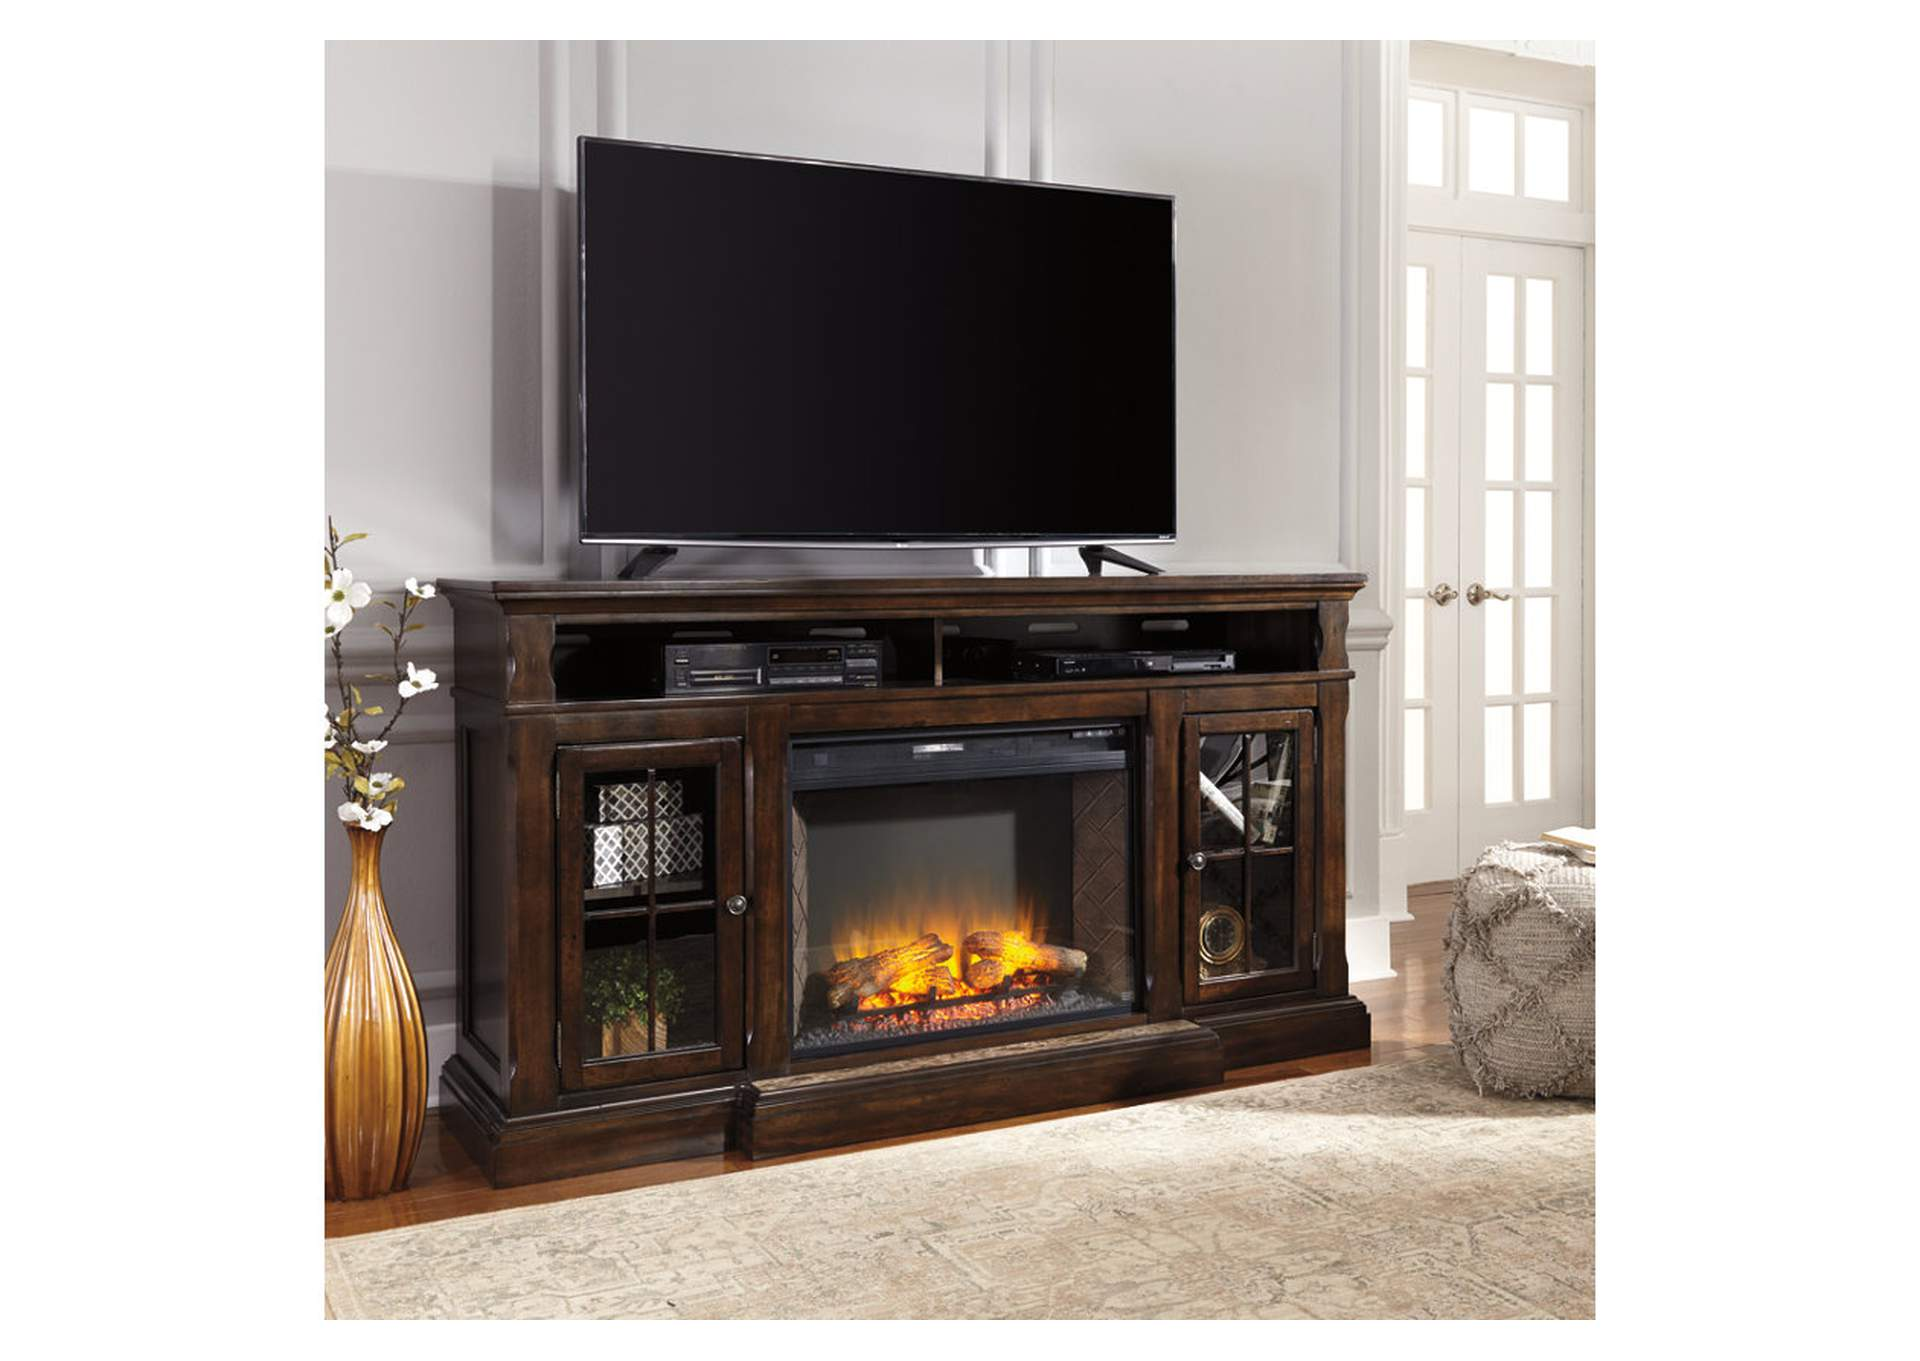 W.A Akins u0026 Sons Roddinton XL TV Stand w/ Fireplace